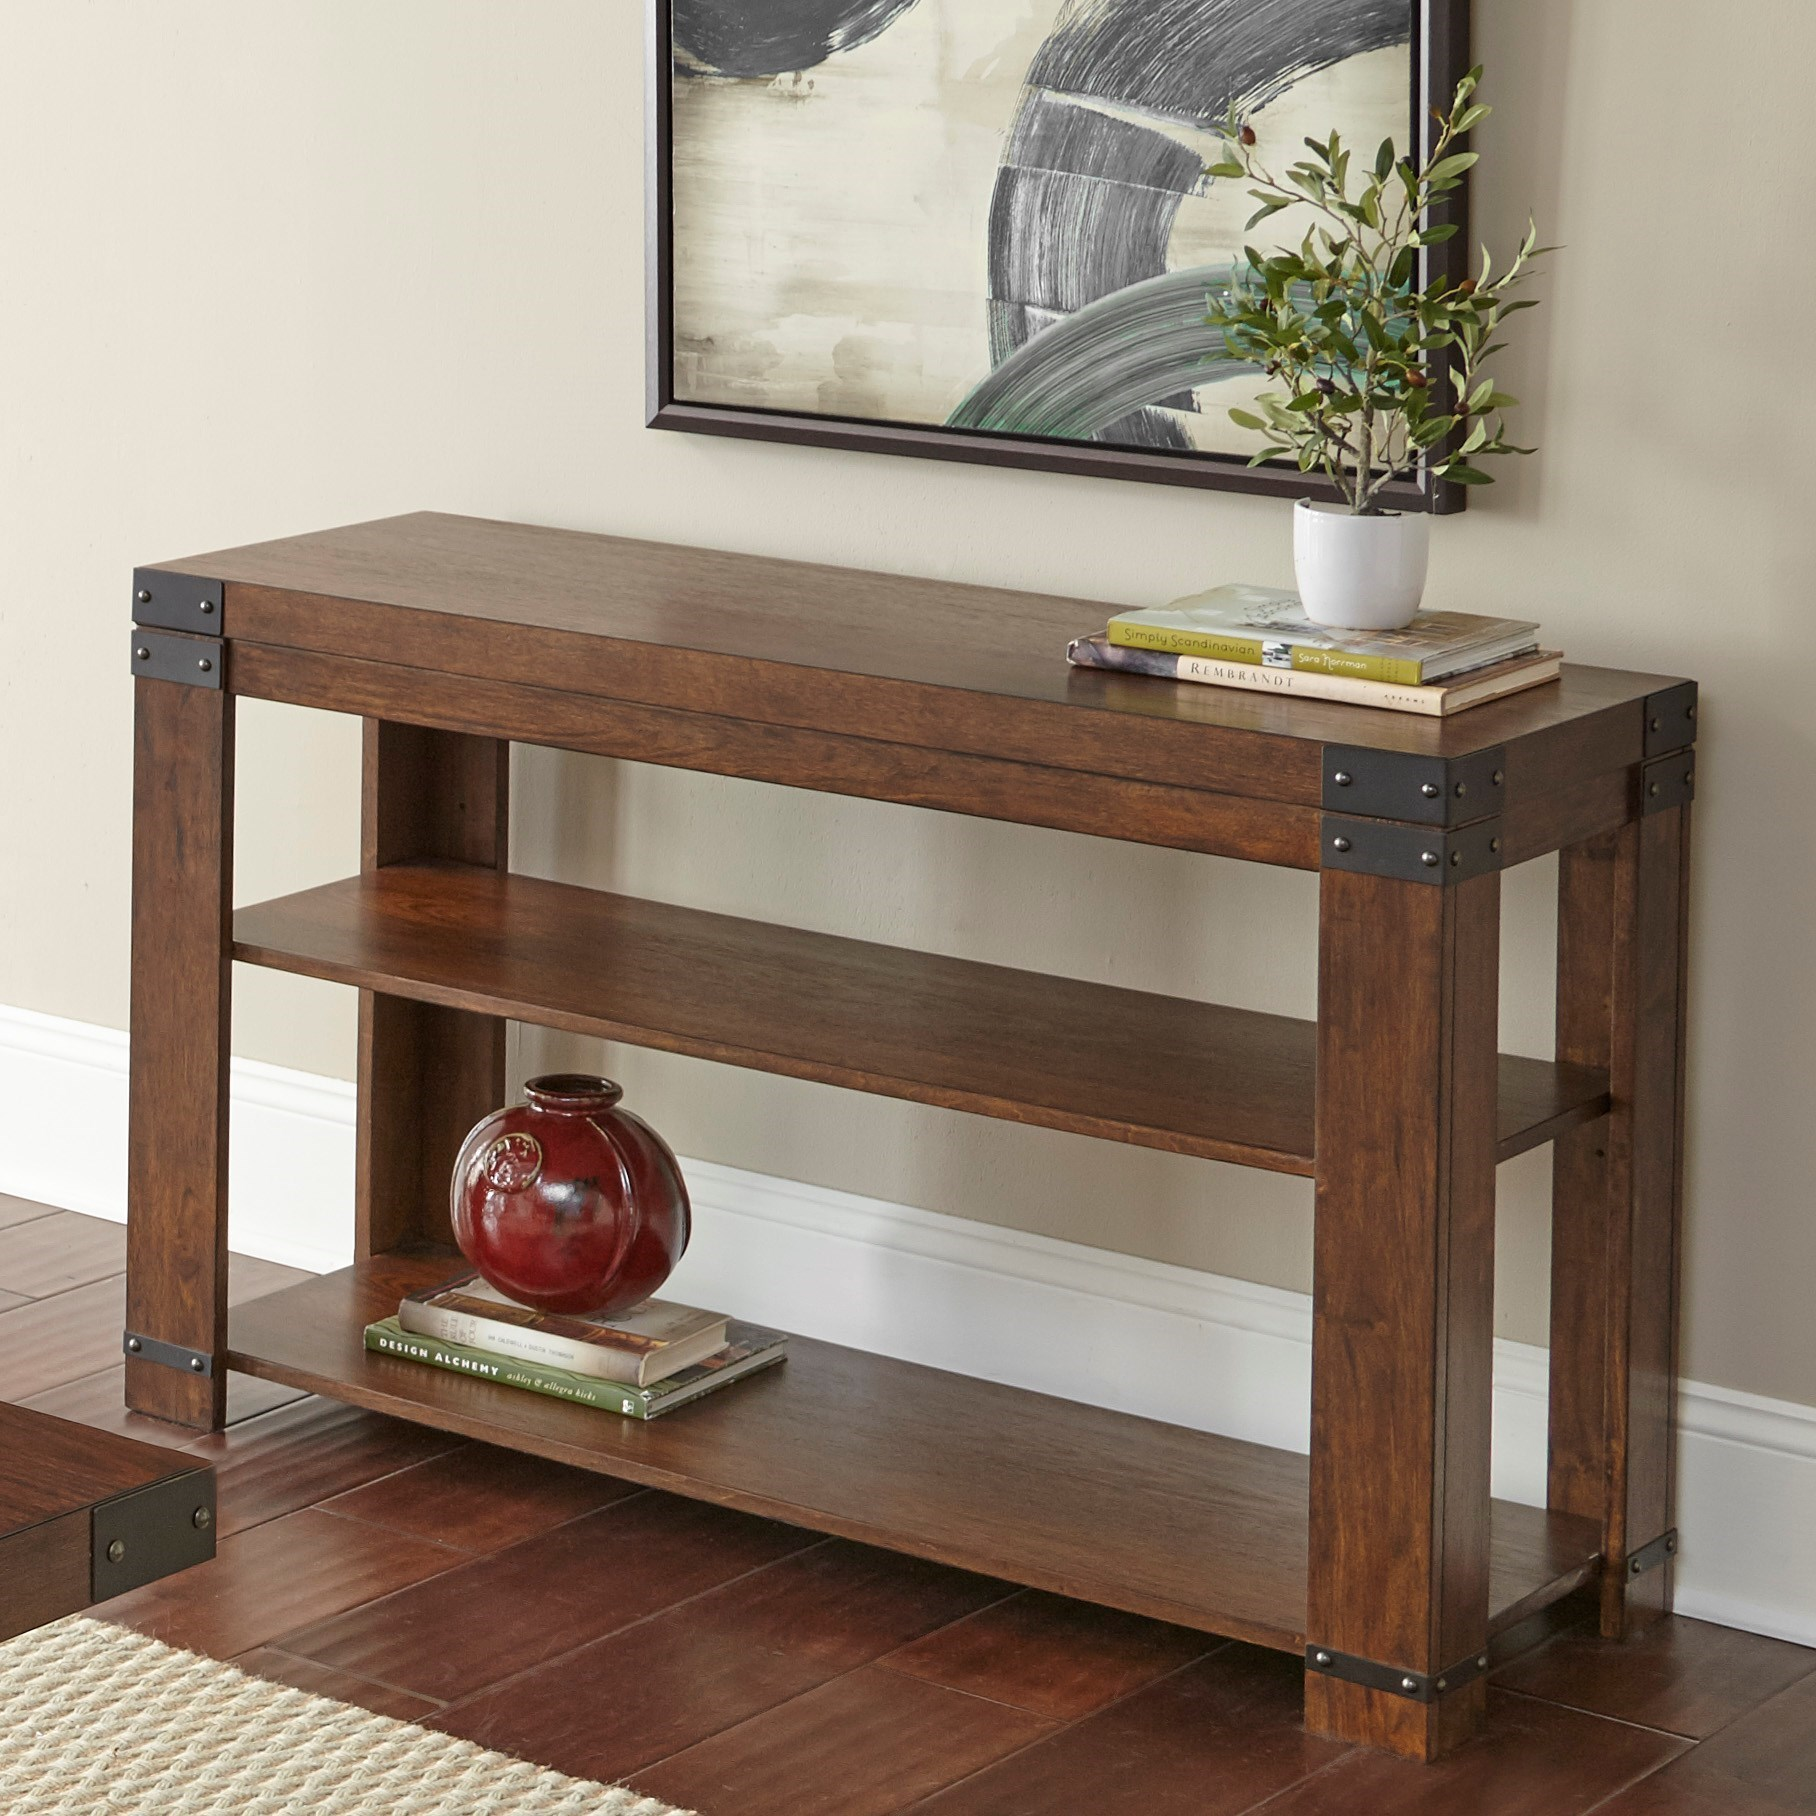 Arusha Sofa Table by Vendor 3985 at Becker Furniture